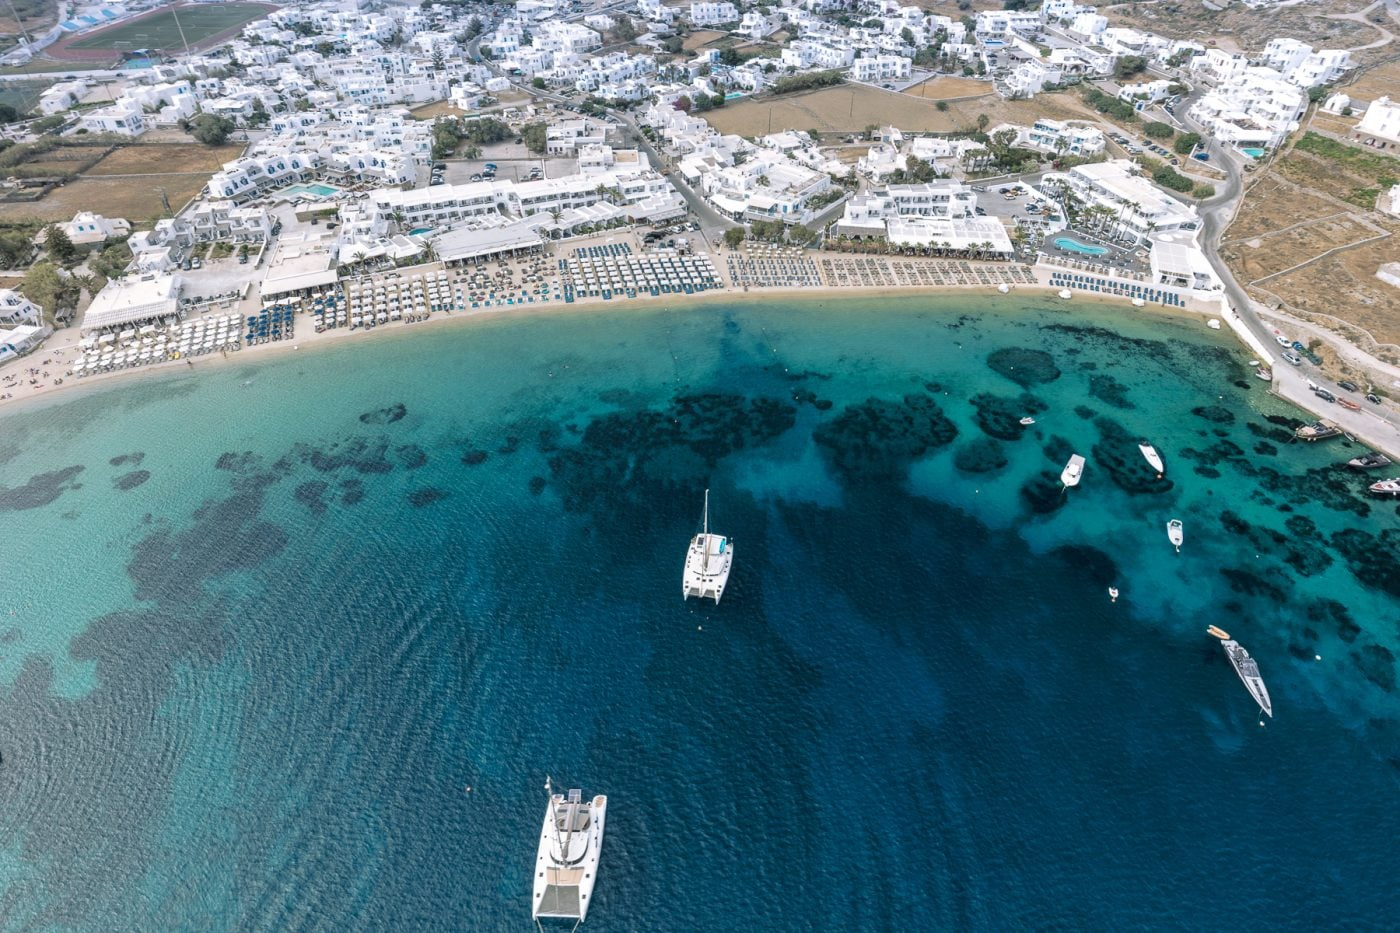 Overhead view of the Ornos beach and the Ornos area where Mykonos Blanc Hotel is located.